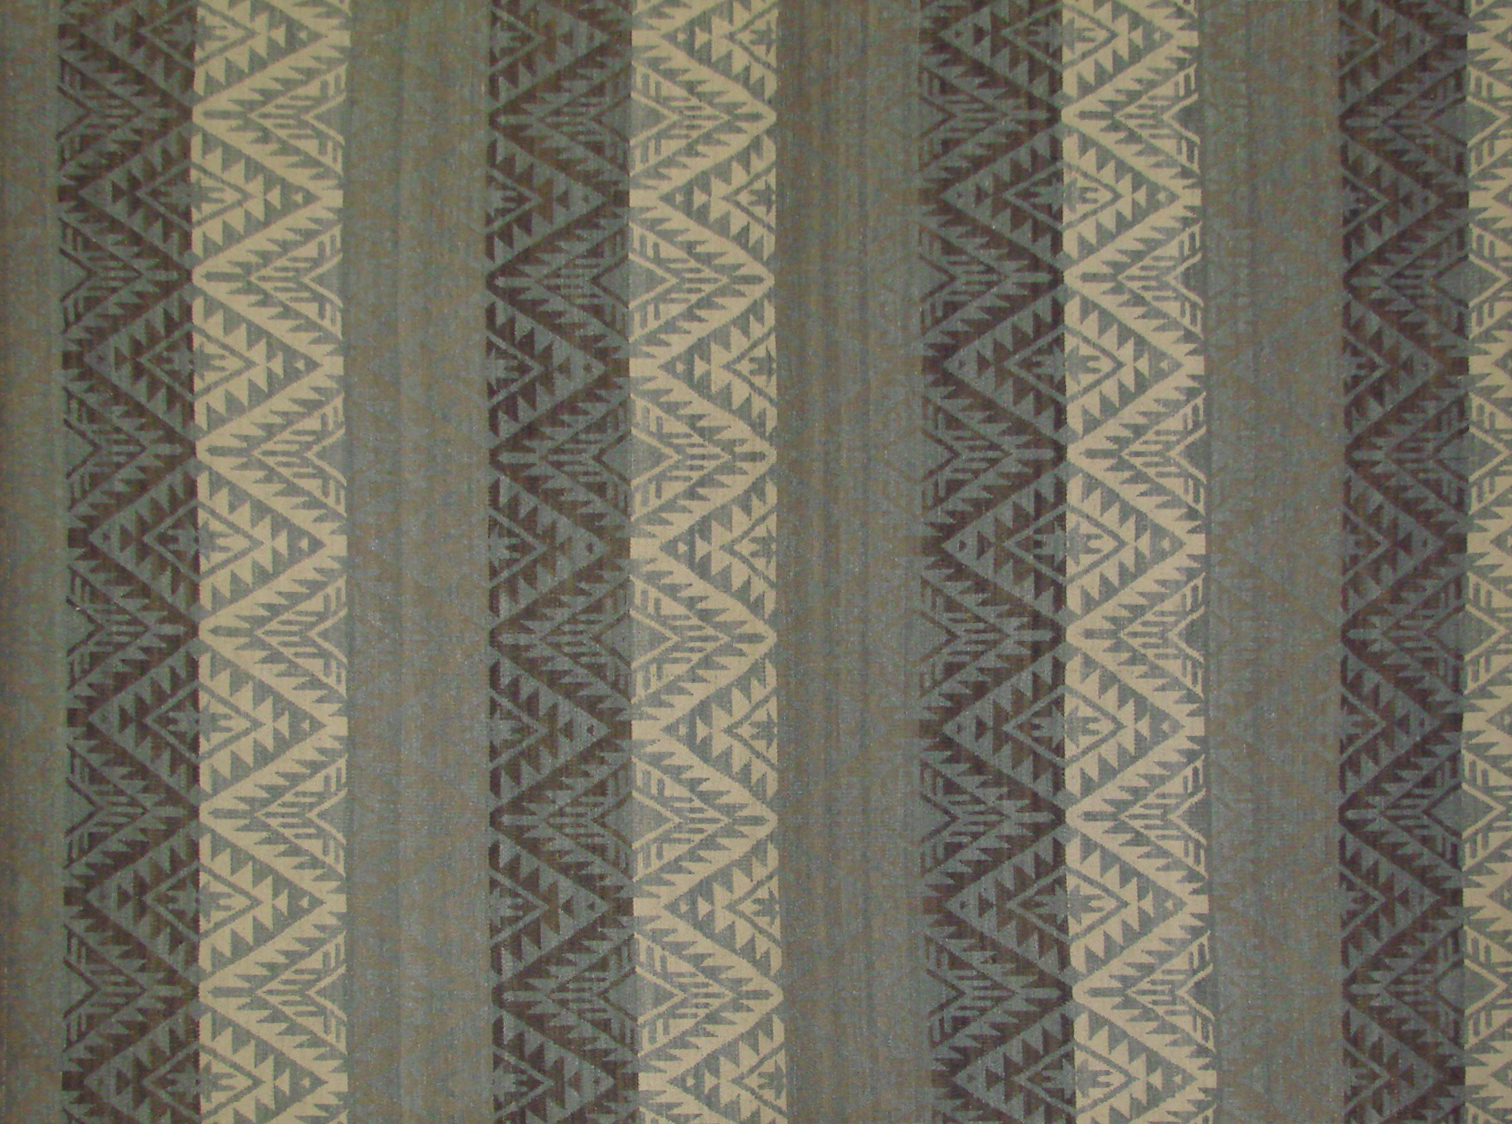 9x12 Flat Weave Hand Knotted Wool Area Rug - MR21304